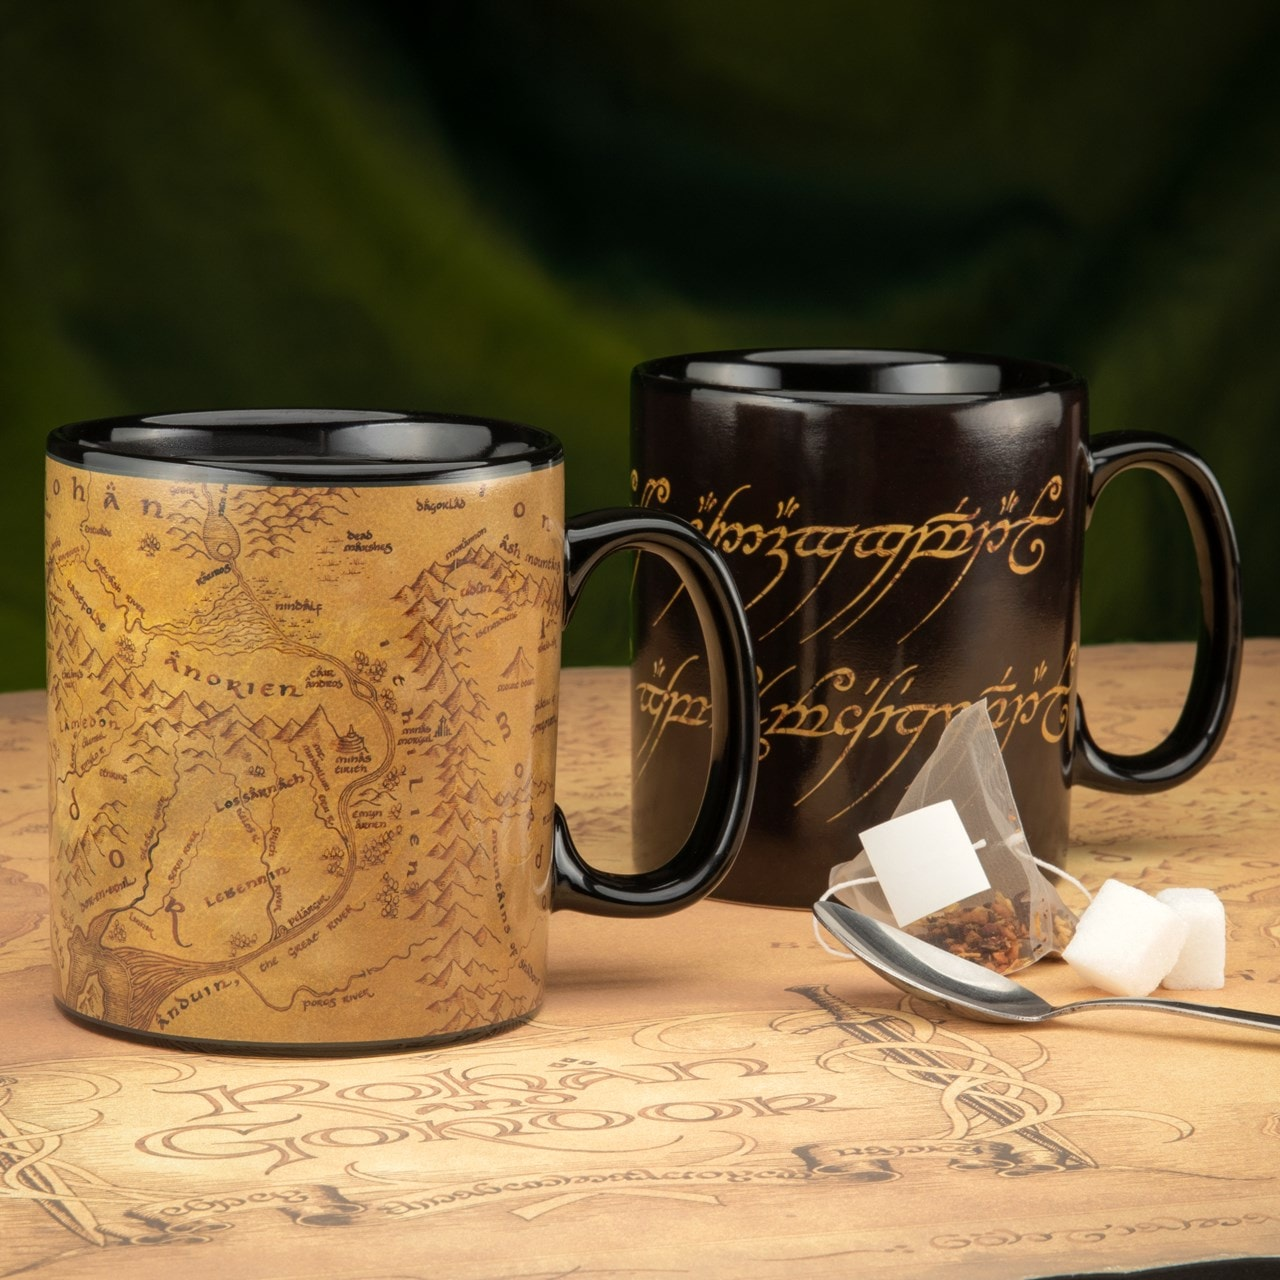 The Lord Of The Rings Heat Change Mug - 1